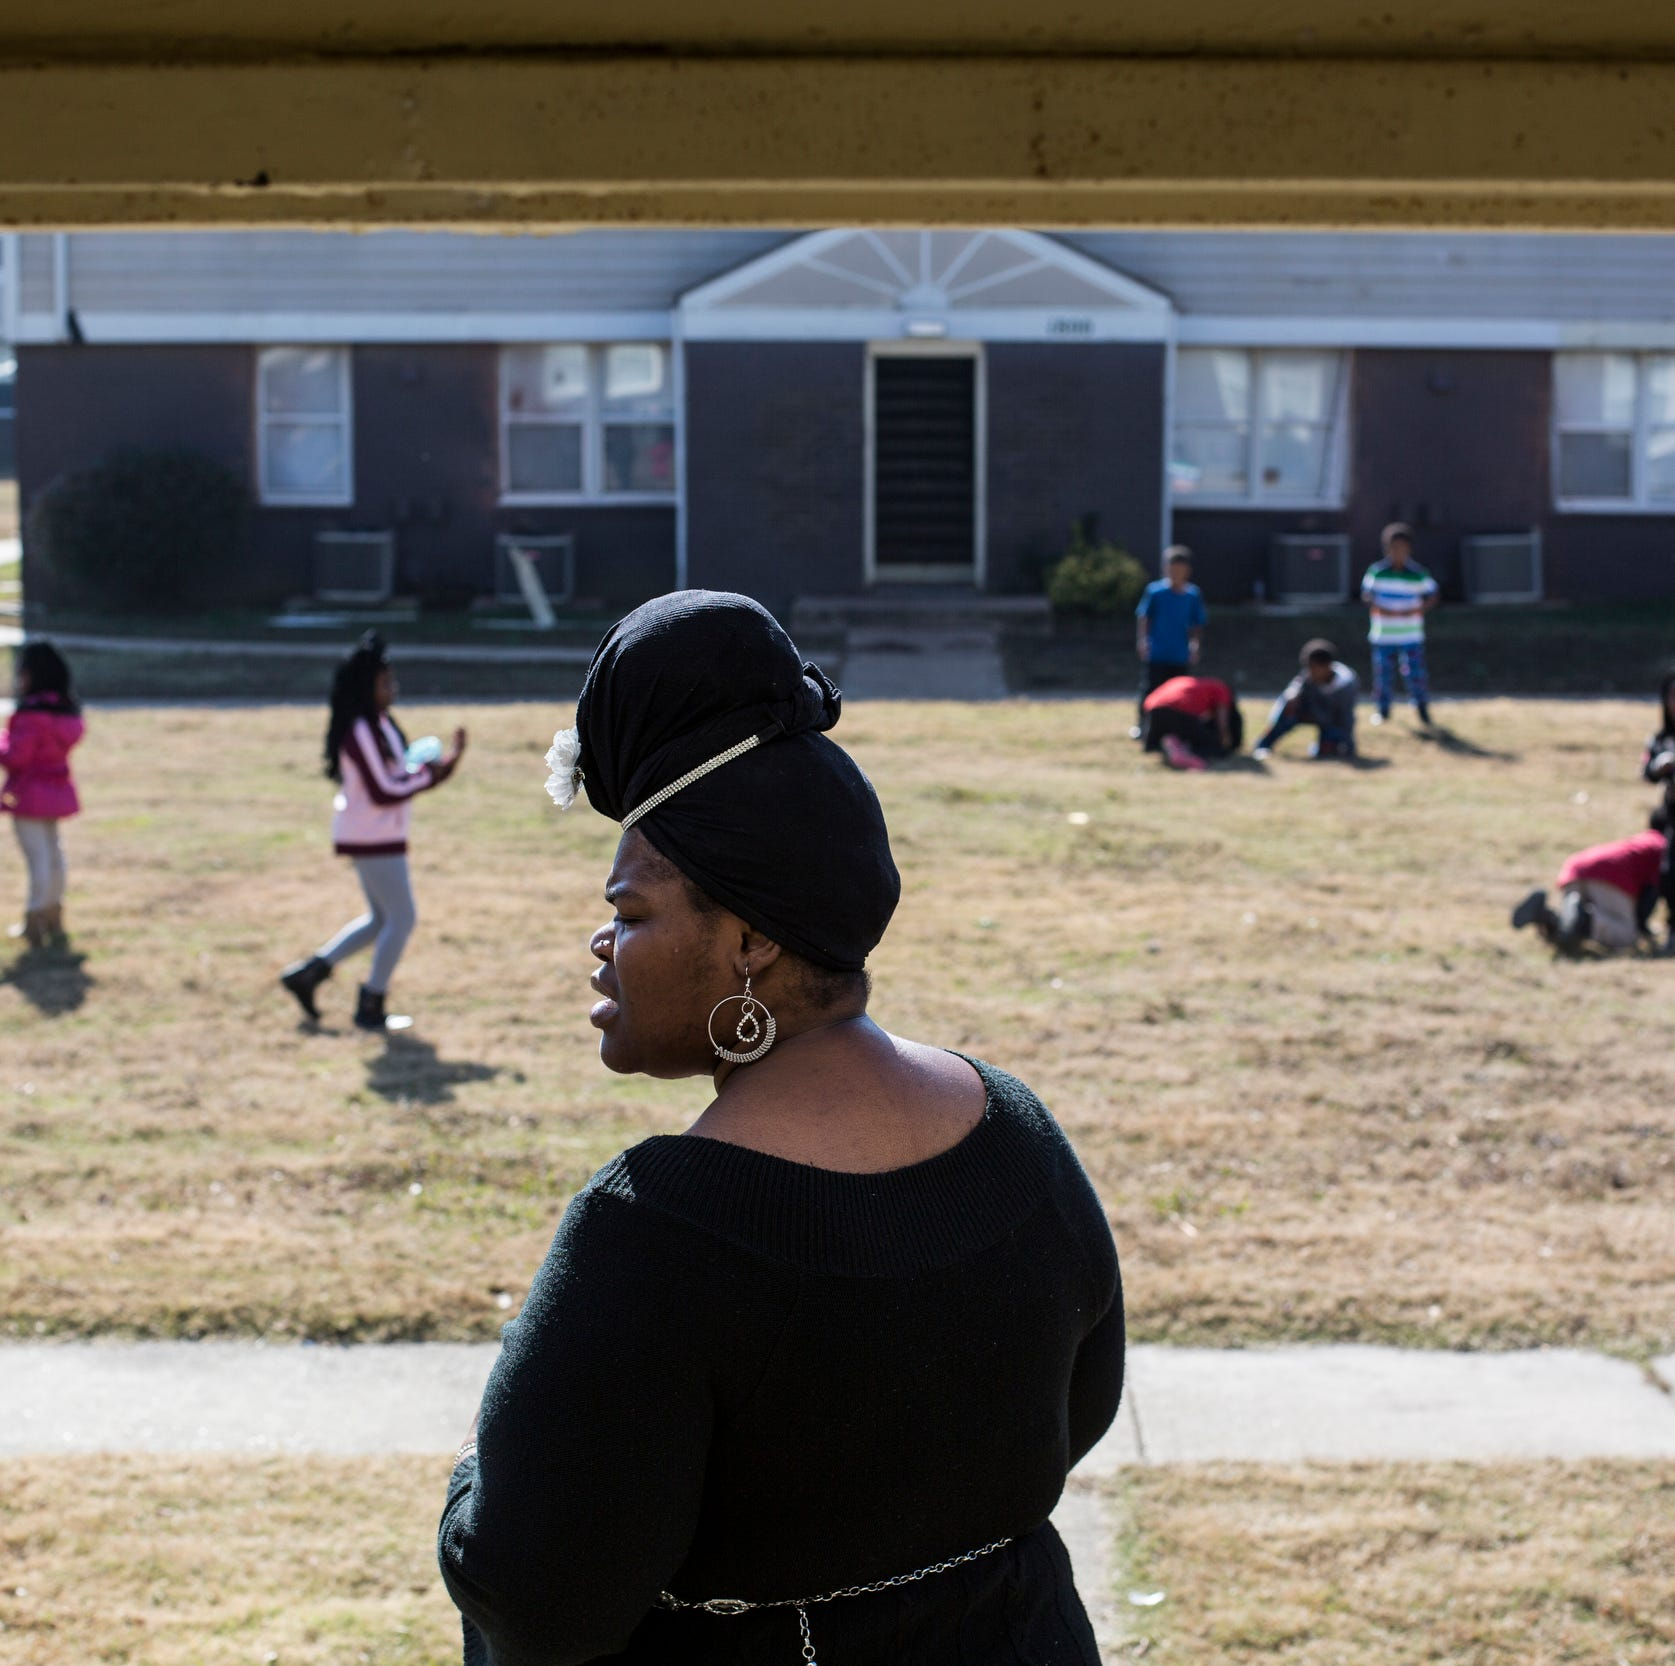 Renovations to a long-neglected Orange Mound apartment complex make for a difficult winter